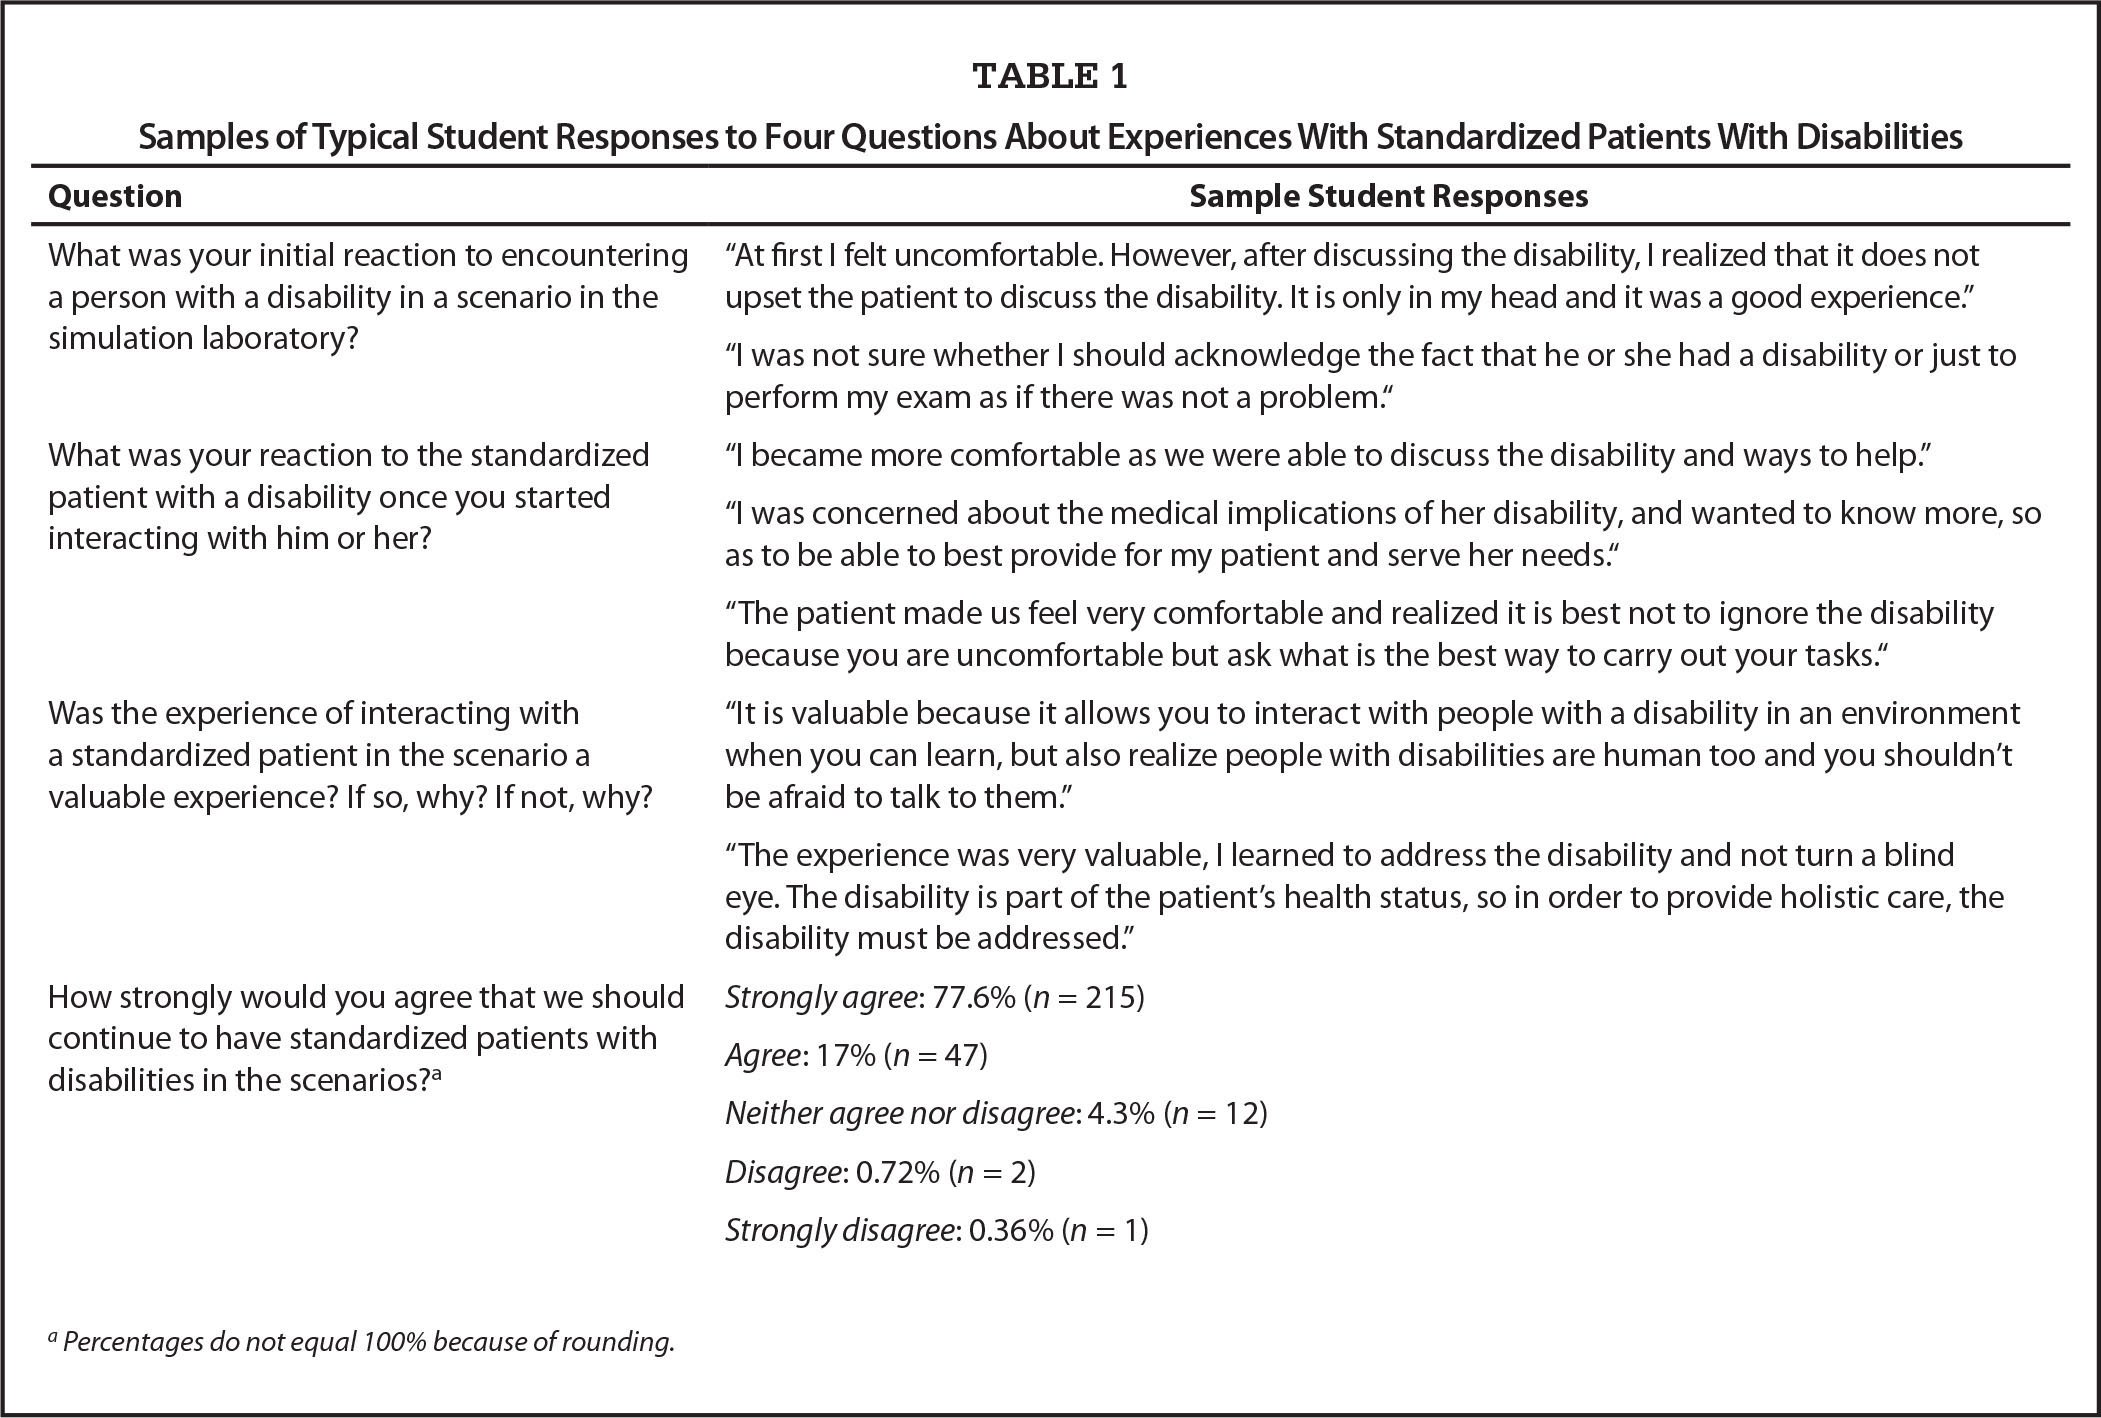 Samples of Typical Student Responses to Four Questions About Experiences With Standardized Patients With Disabilities